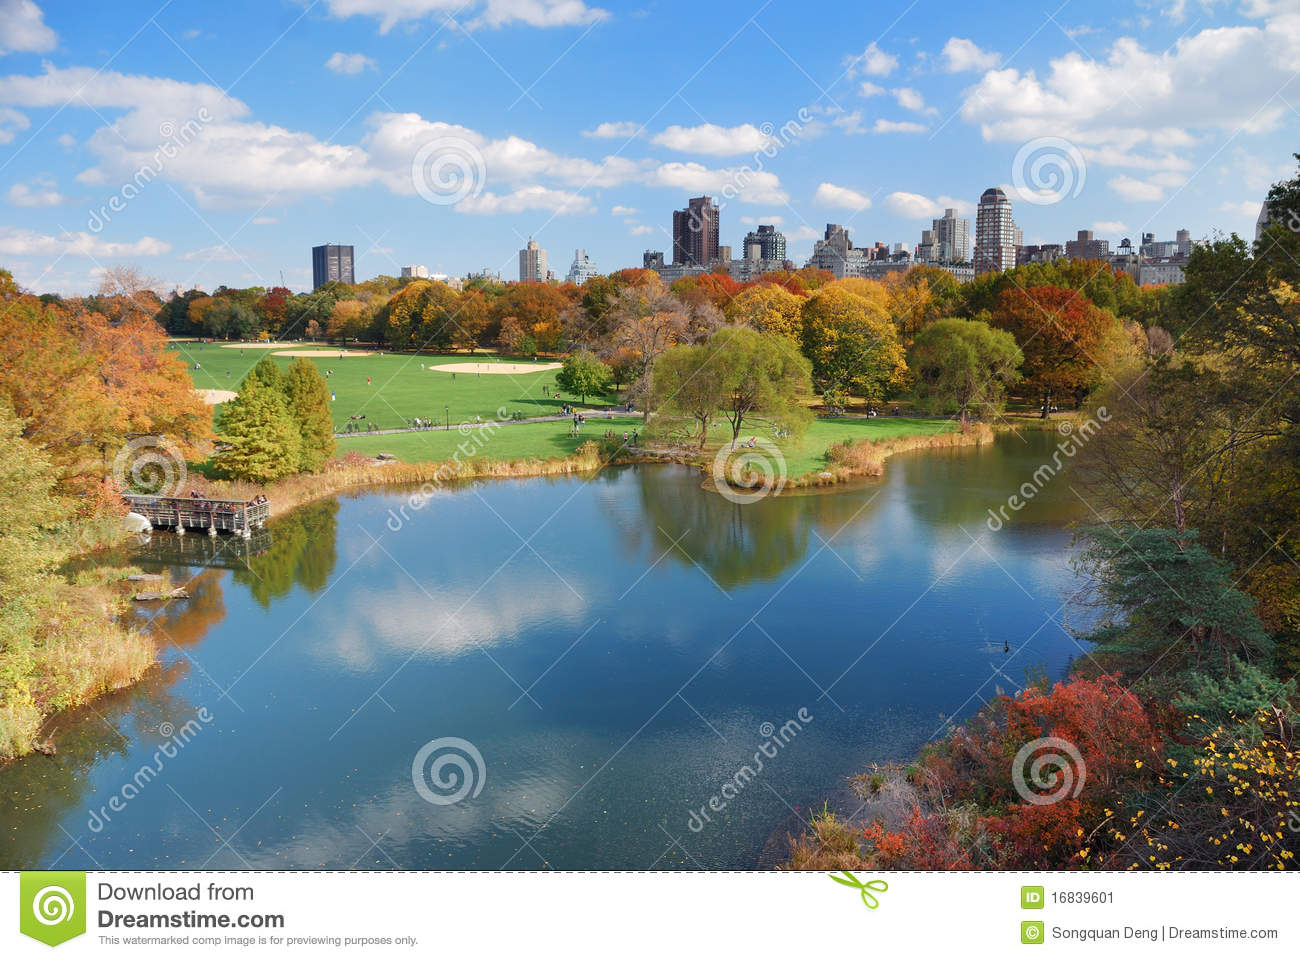 New york city manhattan central park immagine stock for Appartamenti vacanze new york city manhattan